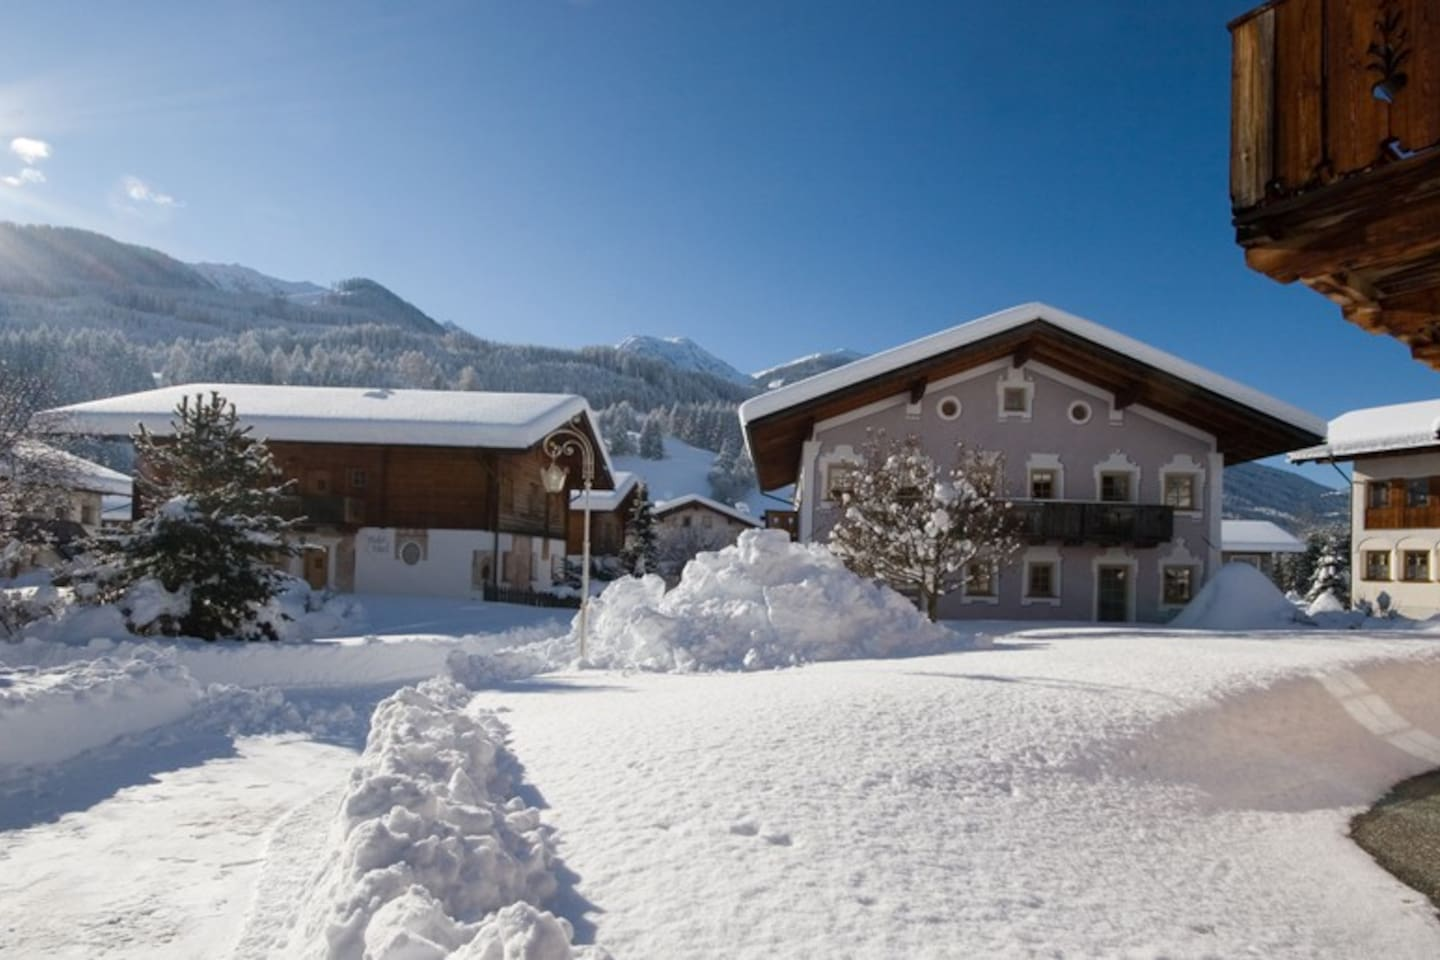 Chalet / apartment on the ski for 2-4 pax